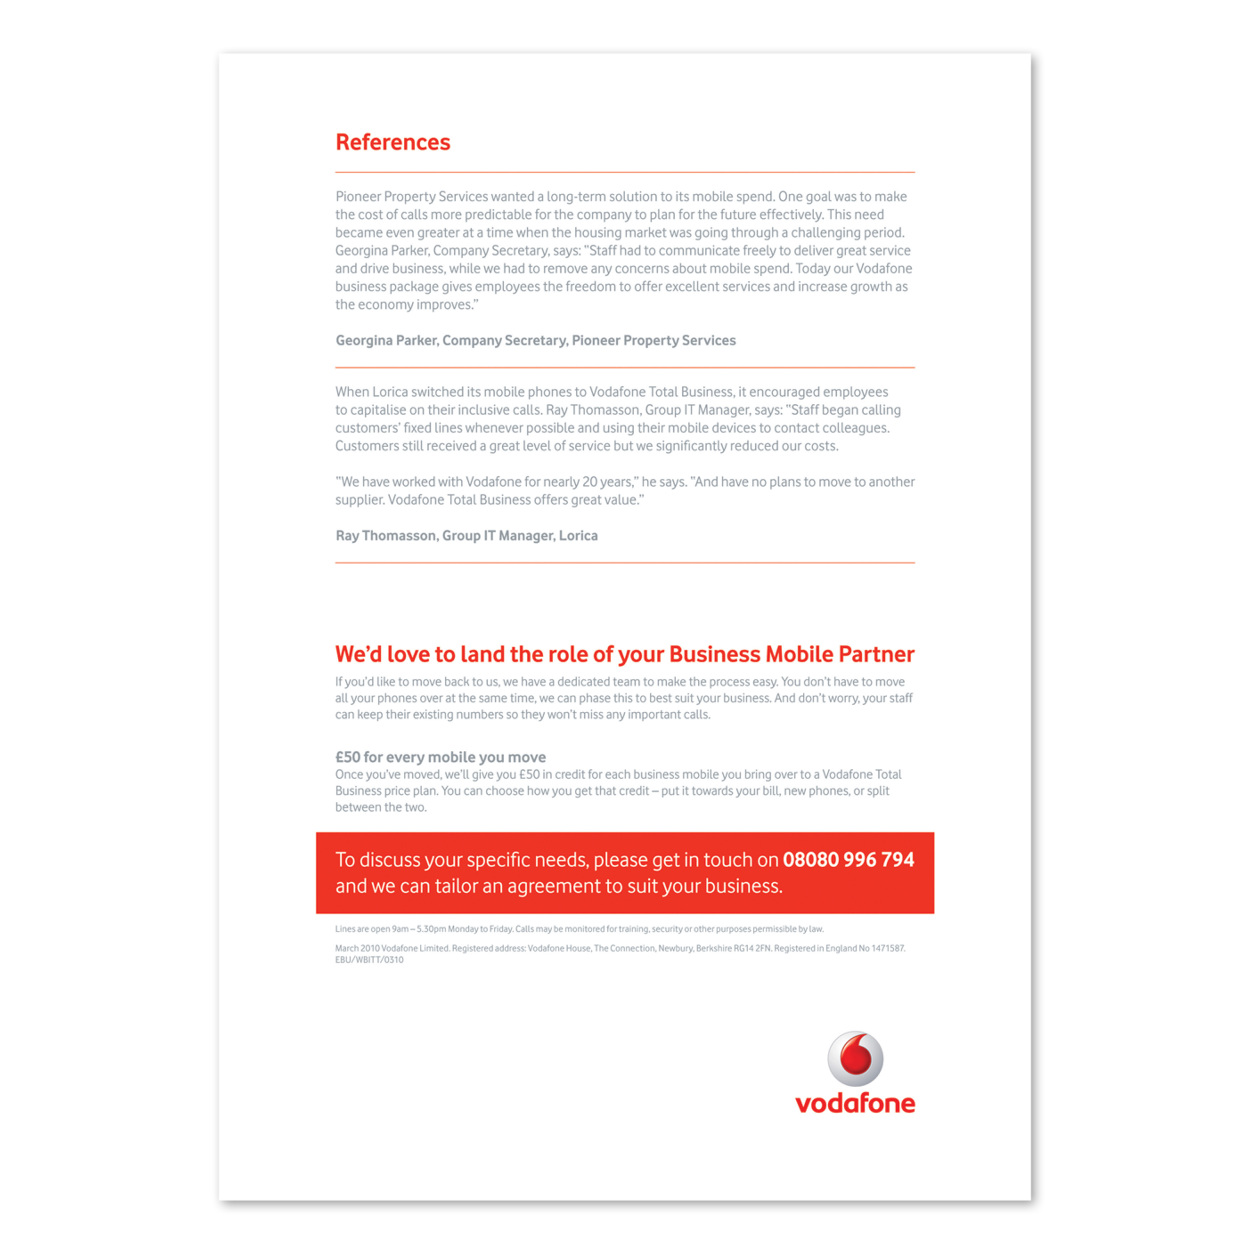 vodafone business cv james fairburn art director vodafone business cv